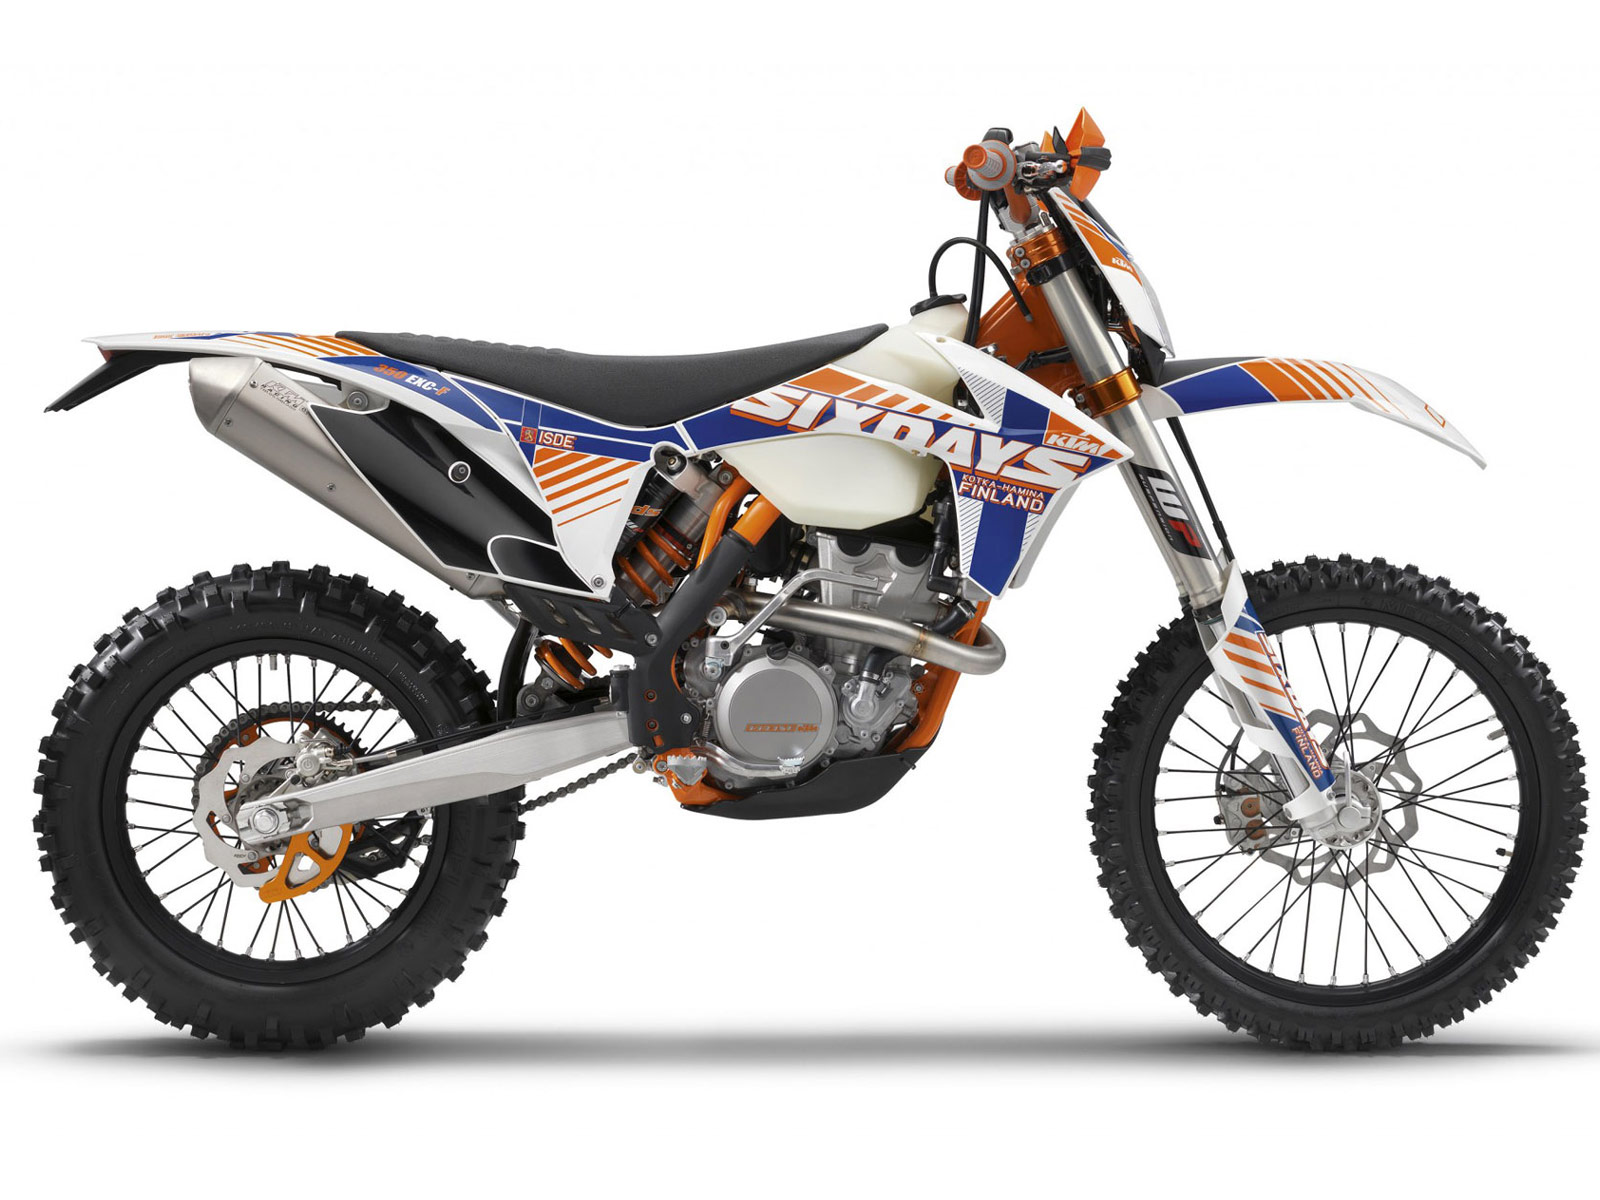 2012 KTM 350 EXC-F Six Days review | Motorcycle Desktop Wallpapers